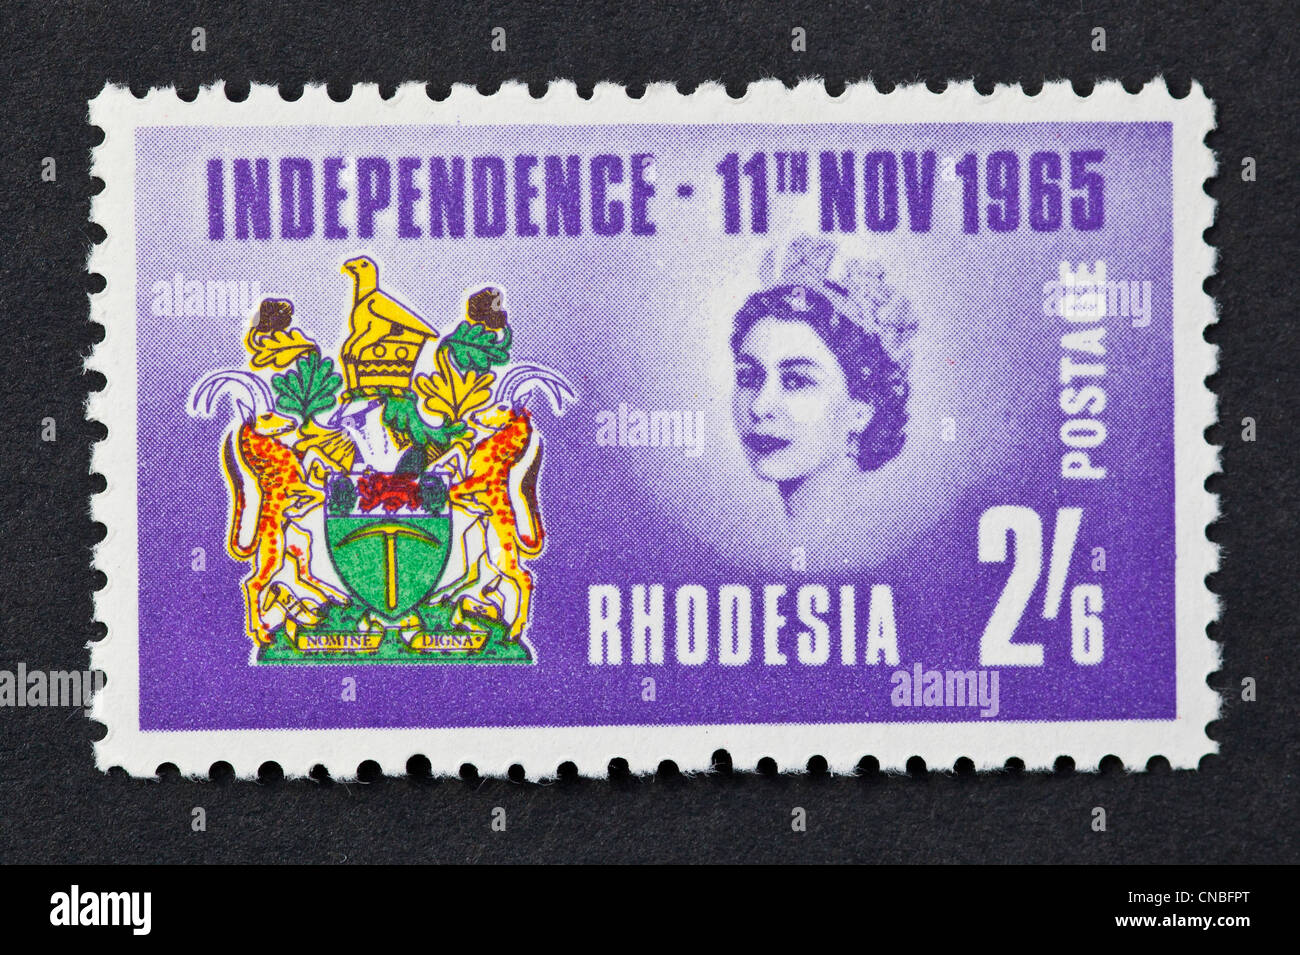 Rhodesia Independence stamp - Stock Image